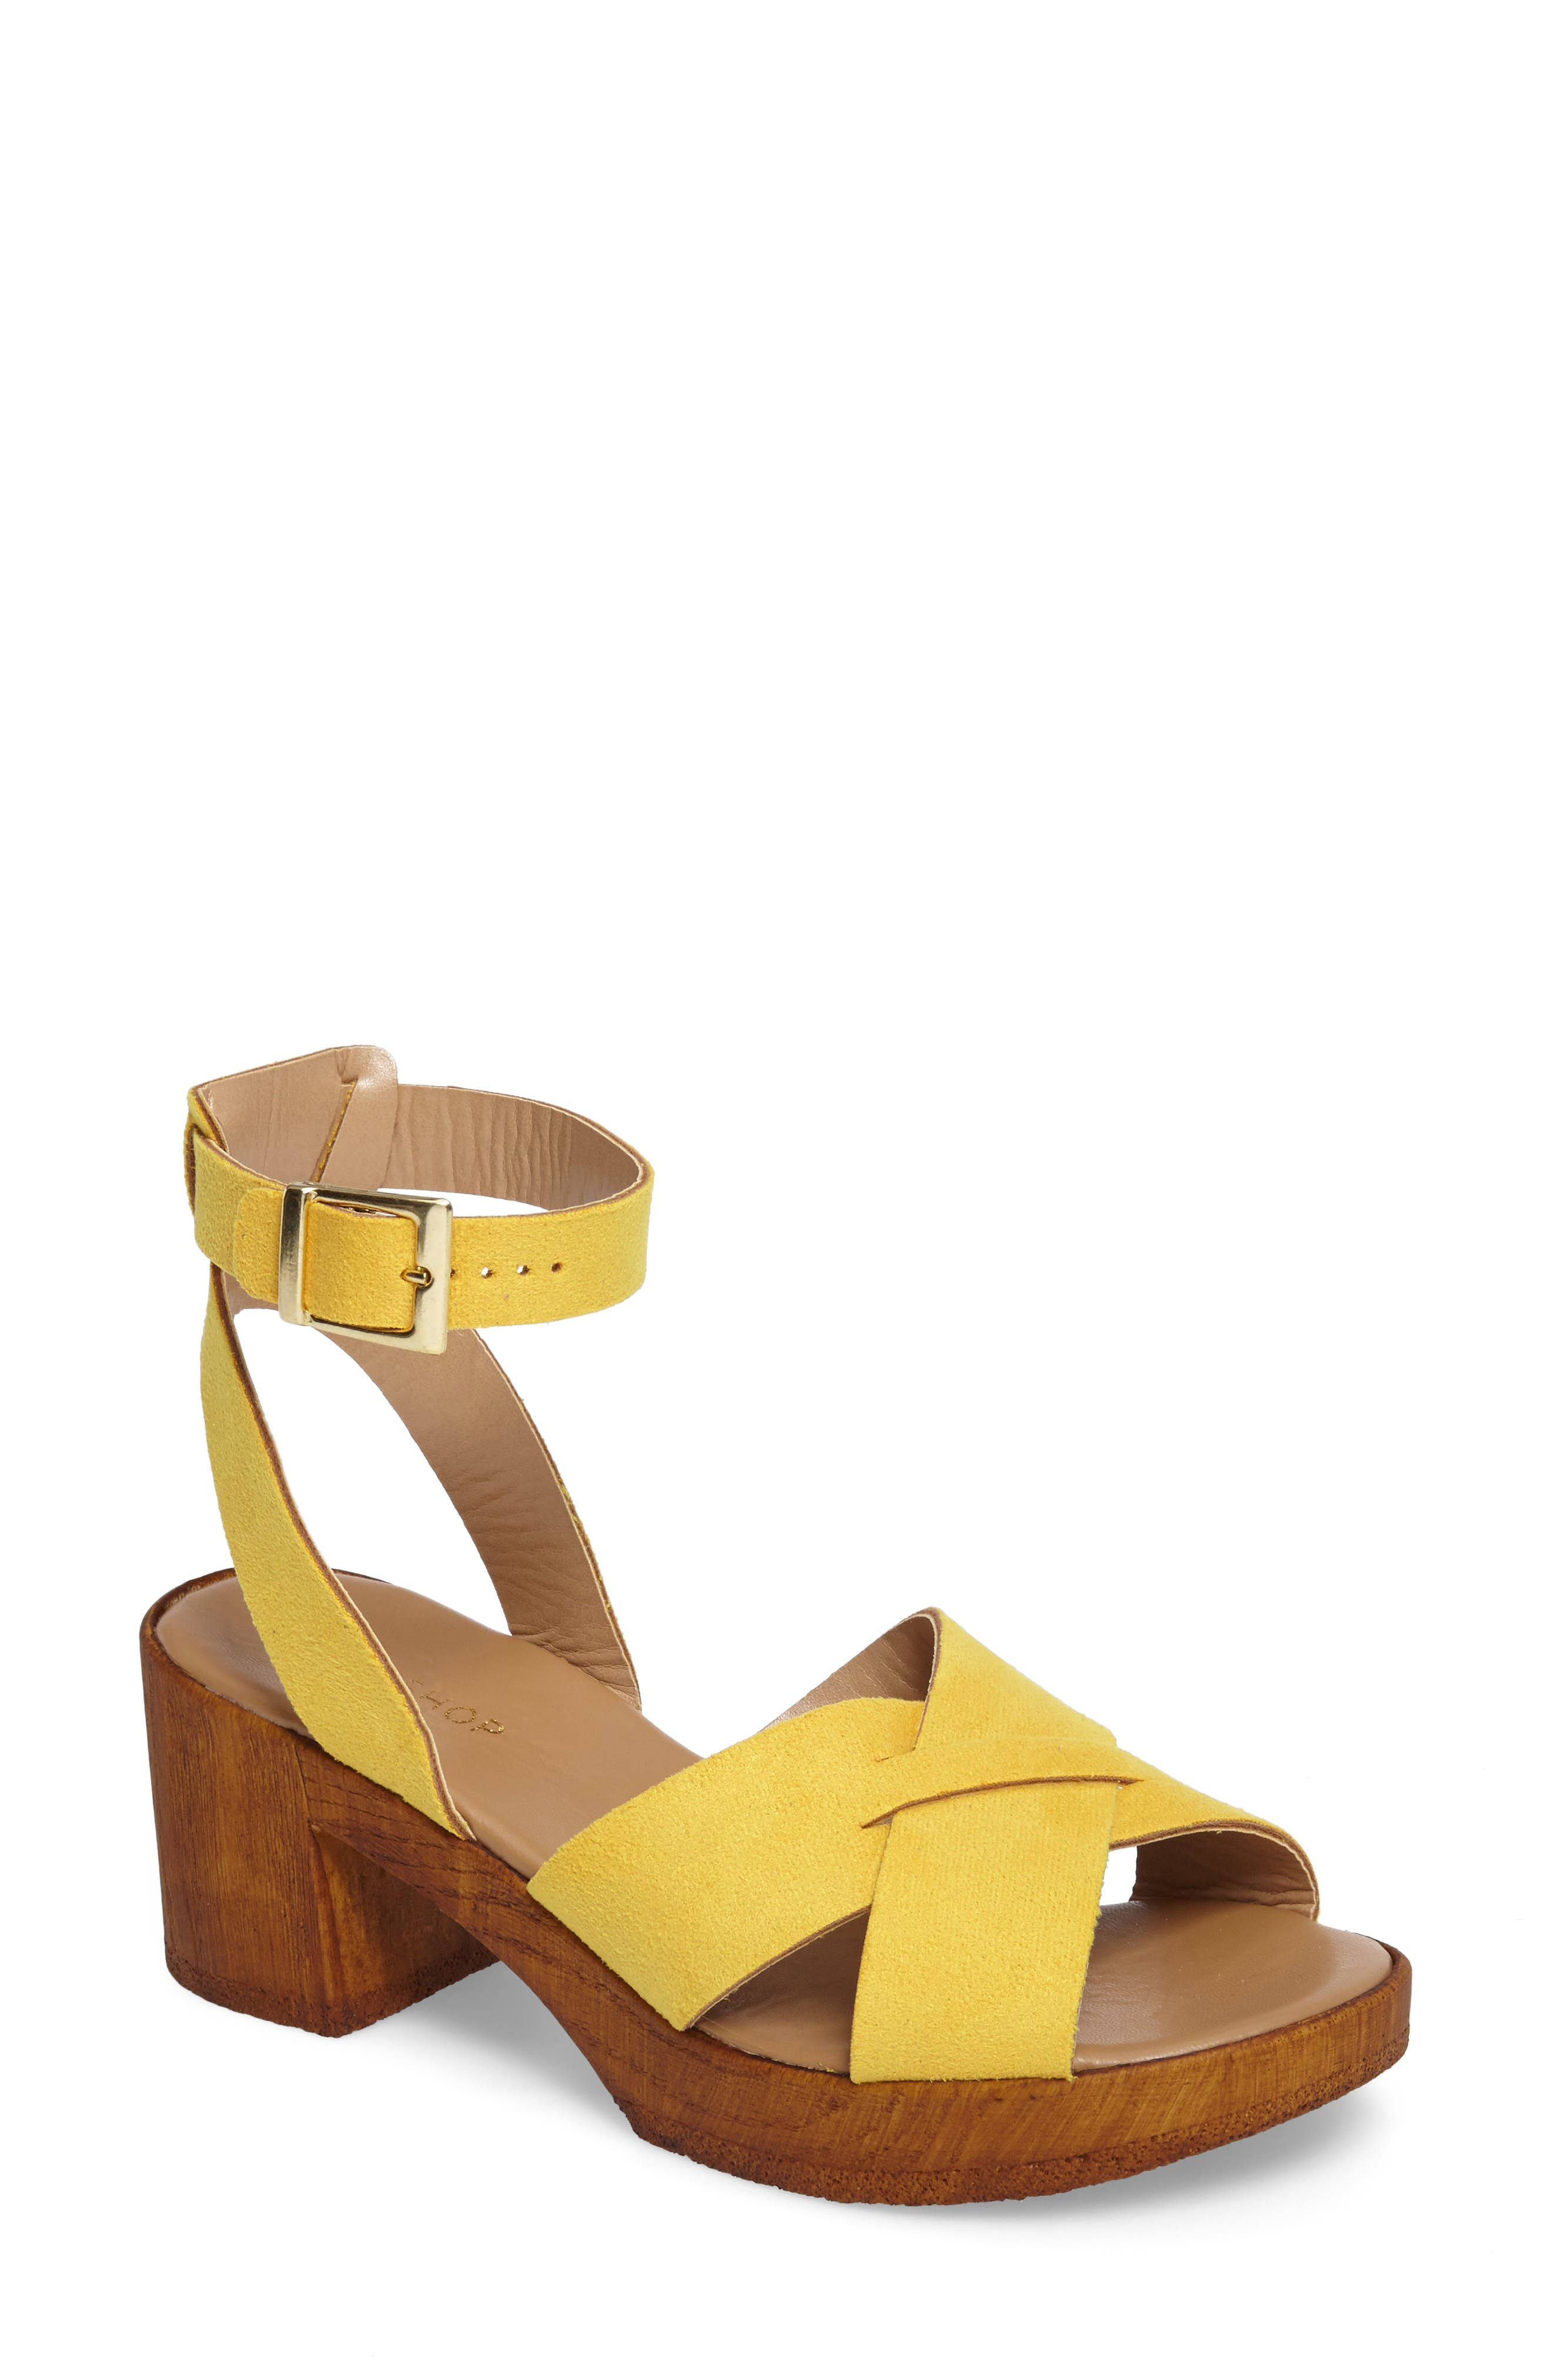 Dolly Block Heel Sandal,                         Main,                         color, Yellow